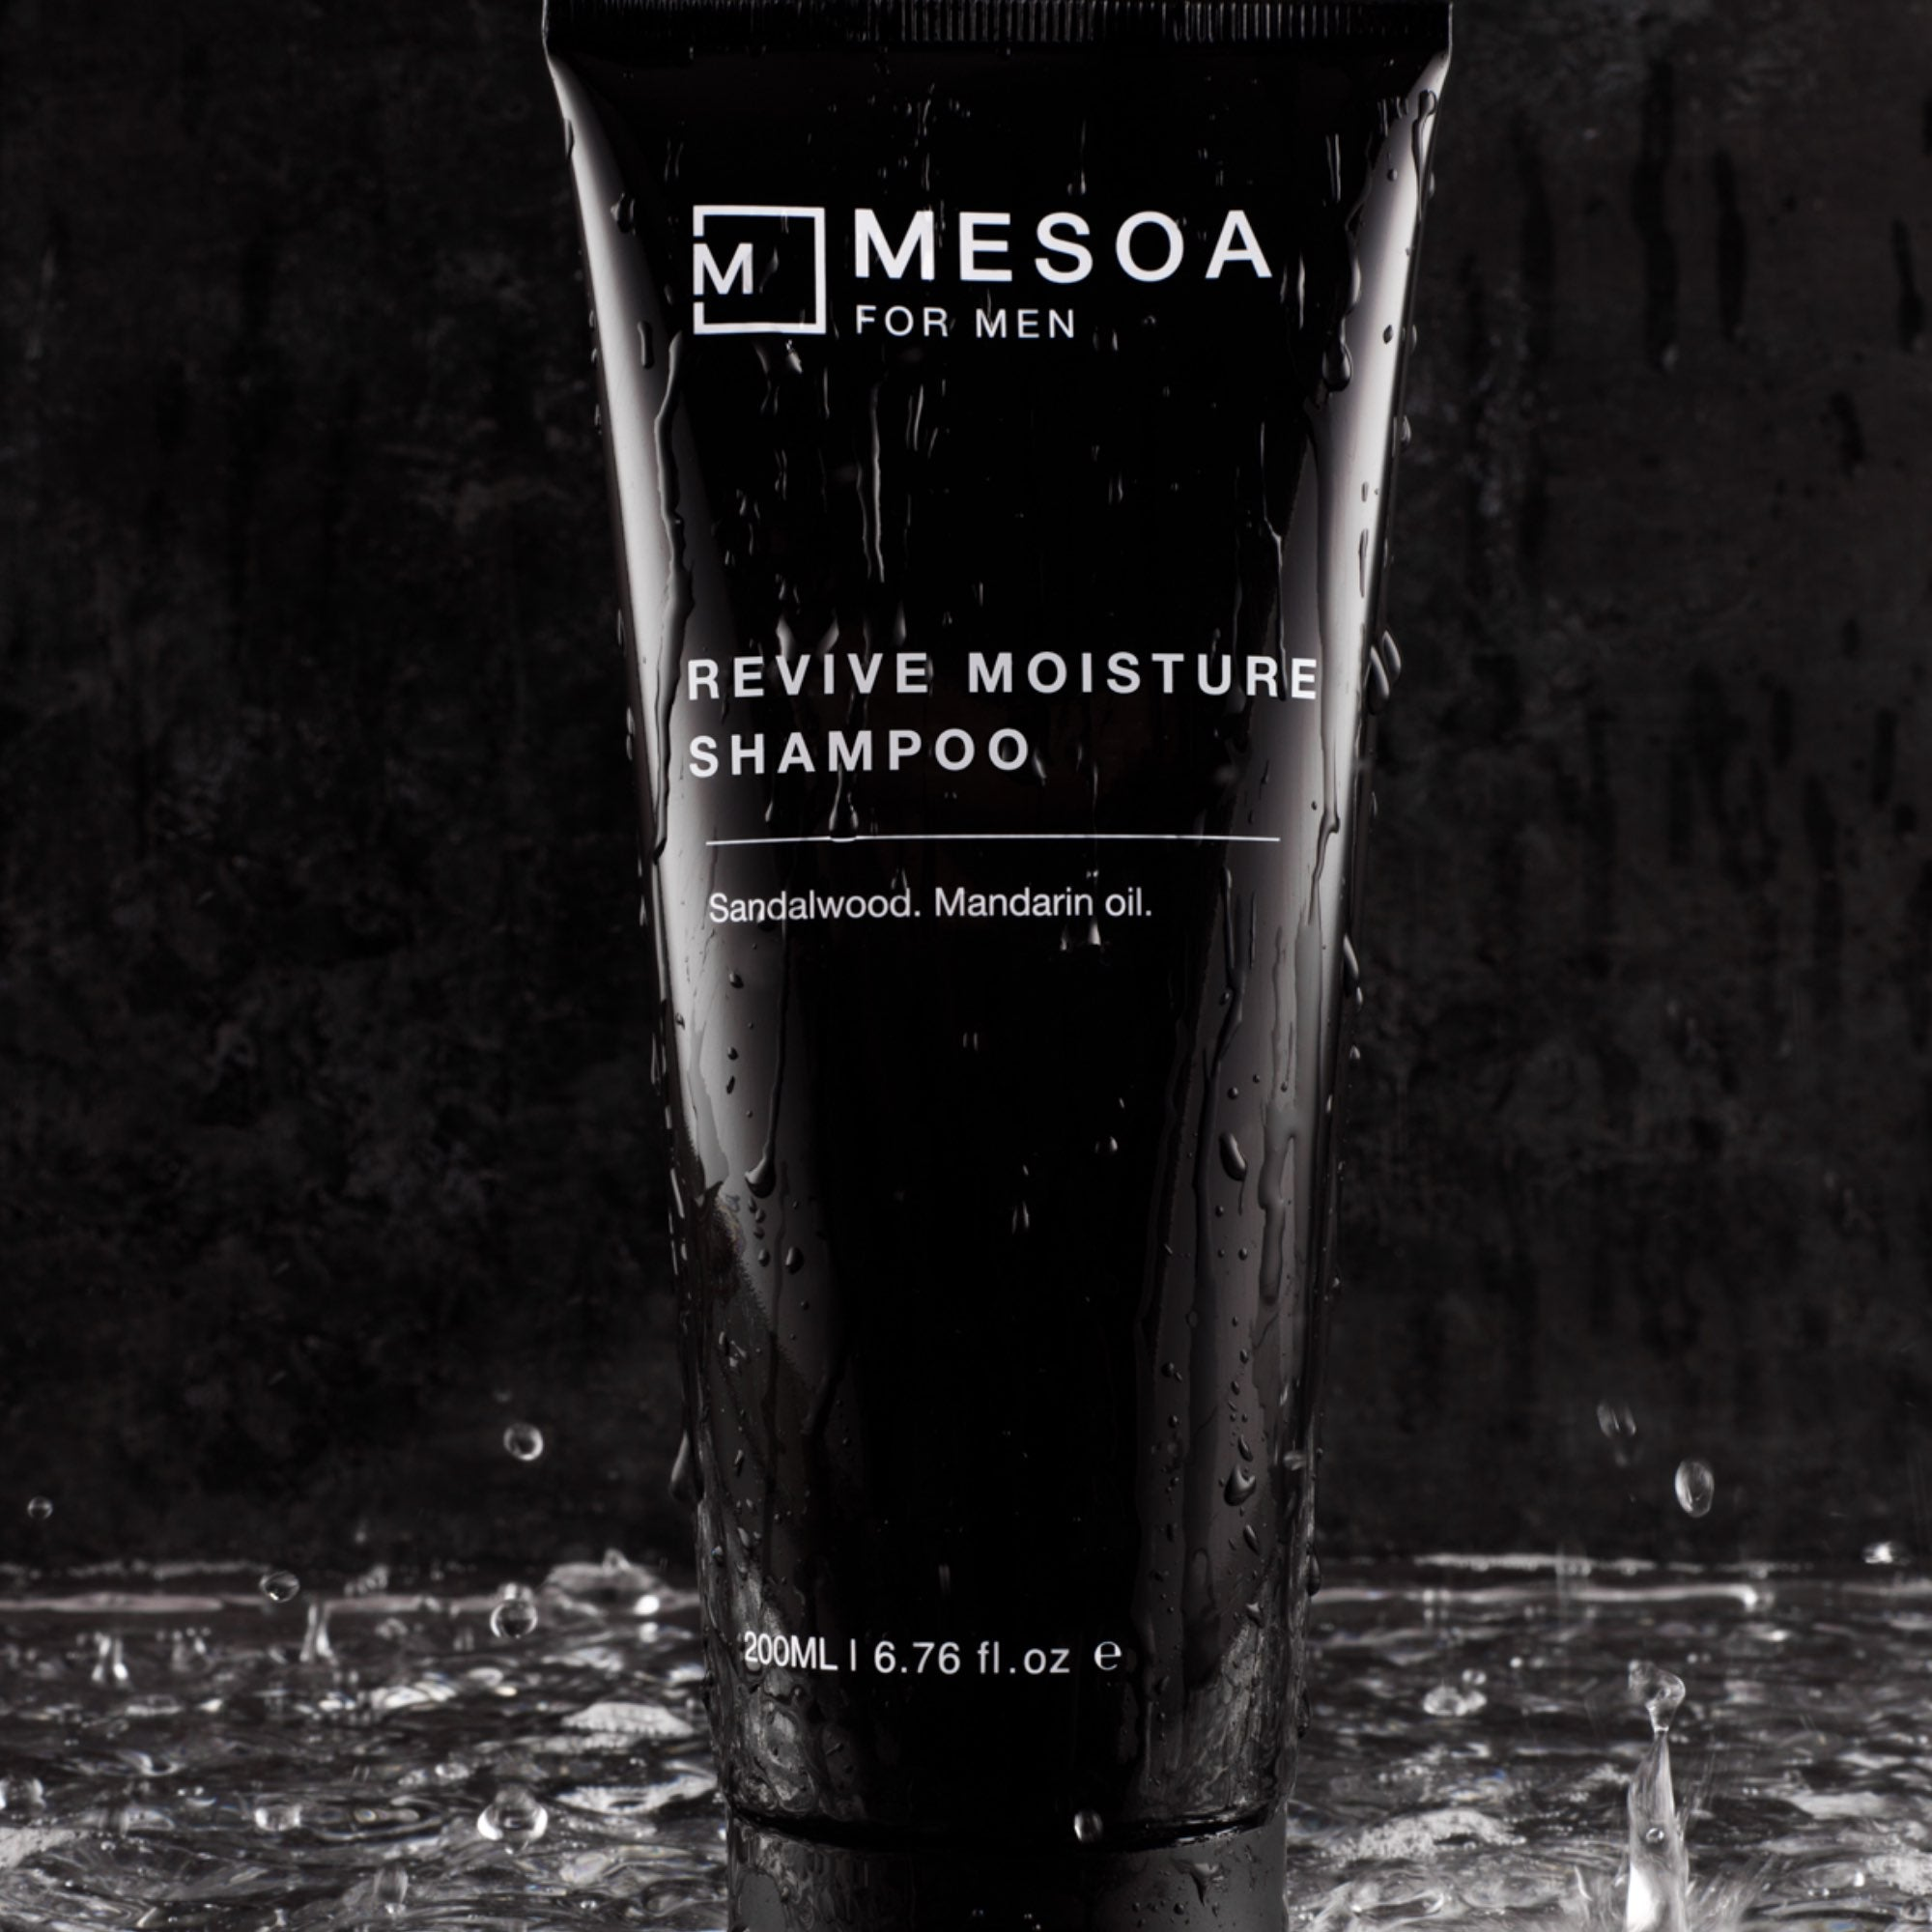 Revive Moisture Shampoo - 200ml